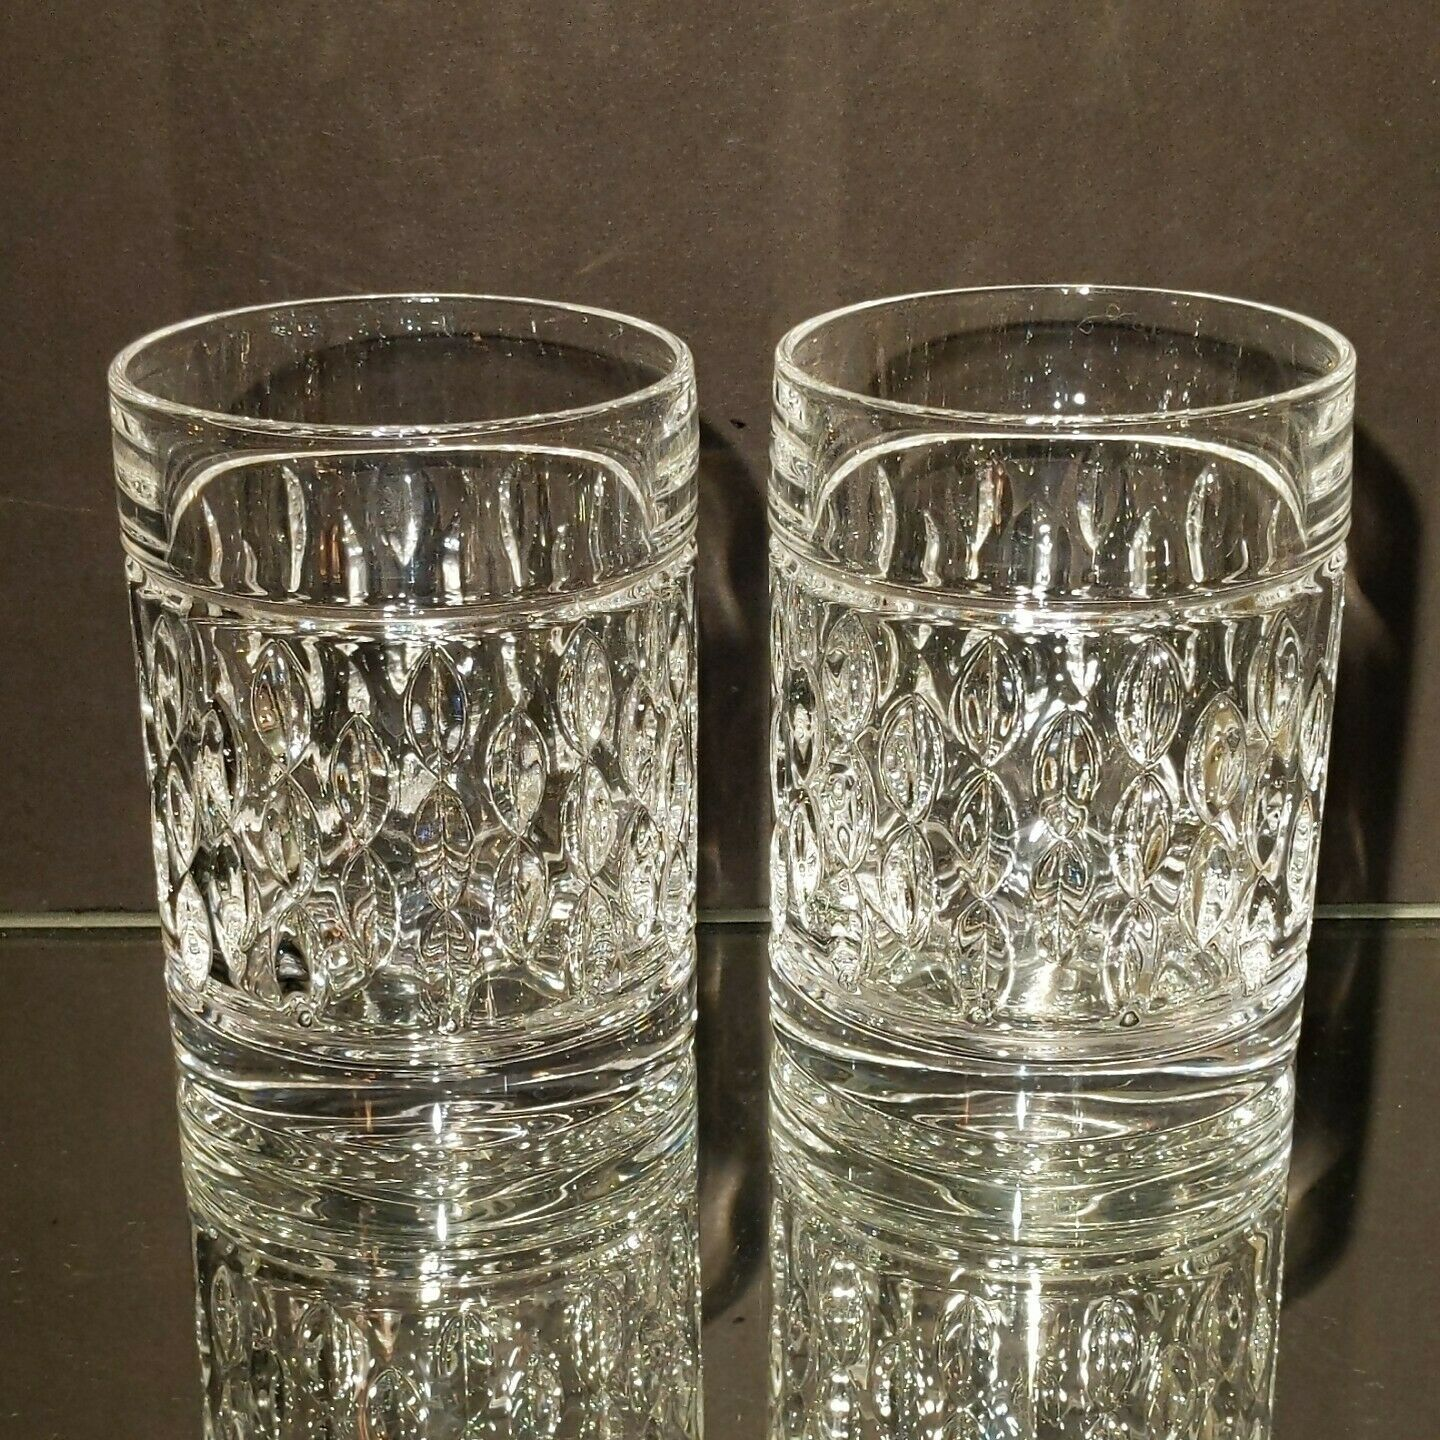 2 (Two) RALPH LAUREN ASTON Cut Lead Crystal DBL Old Fashioned Glasses-Signed